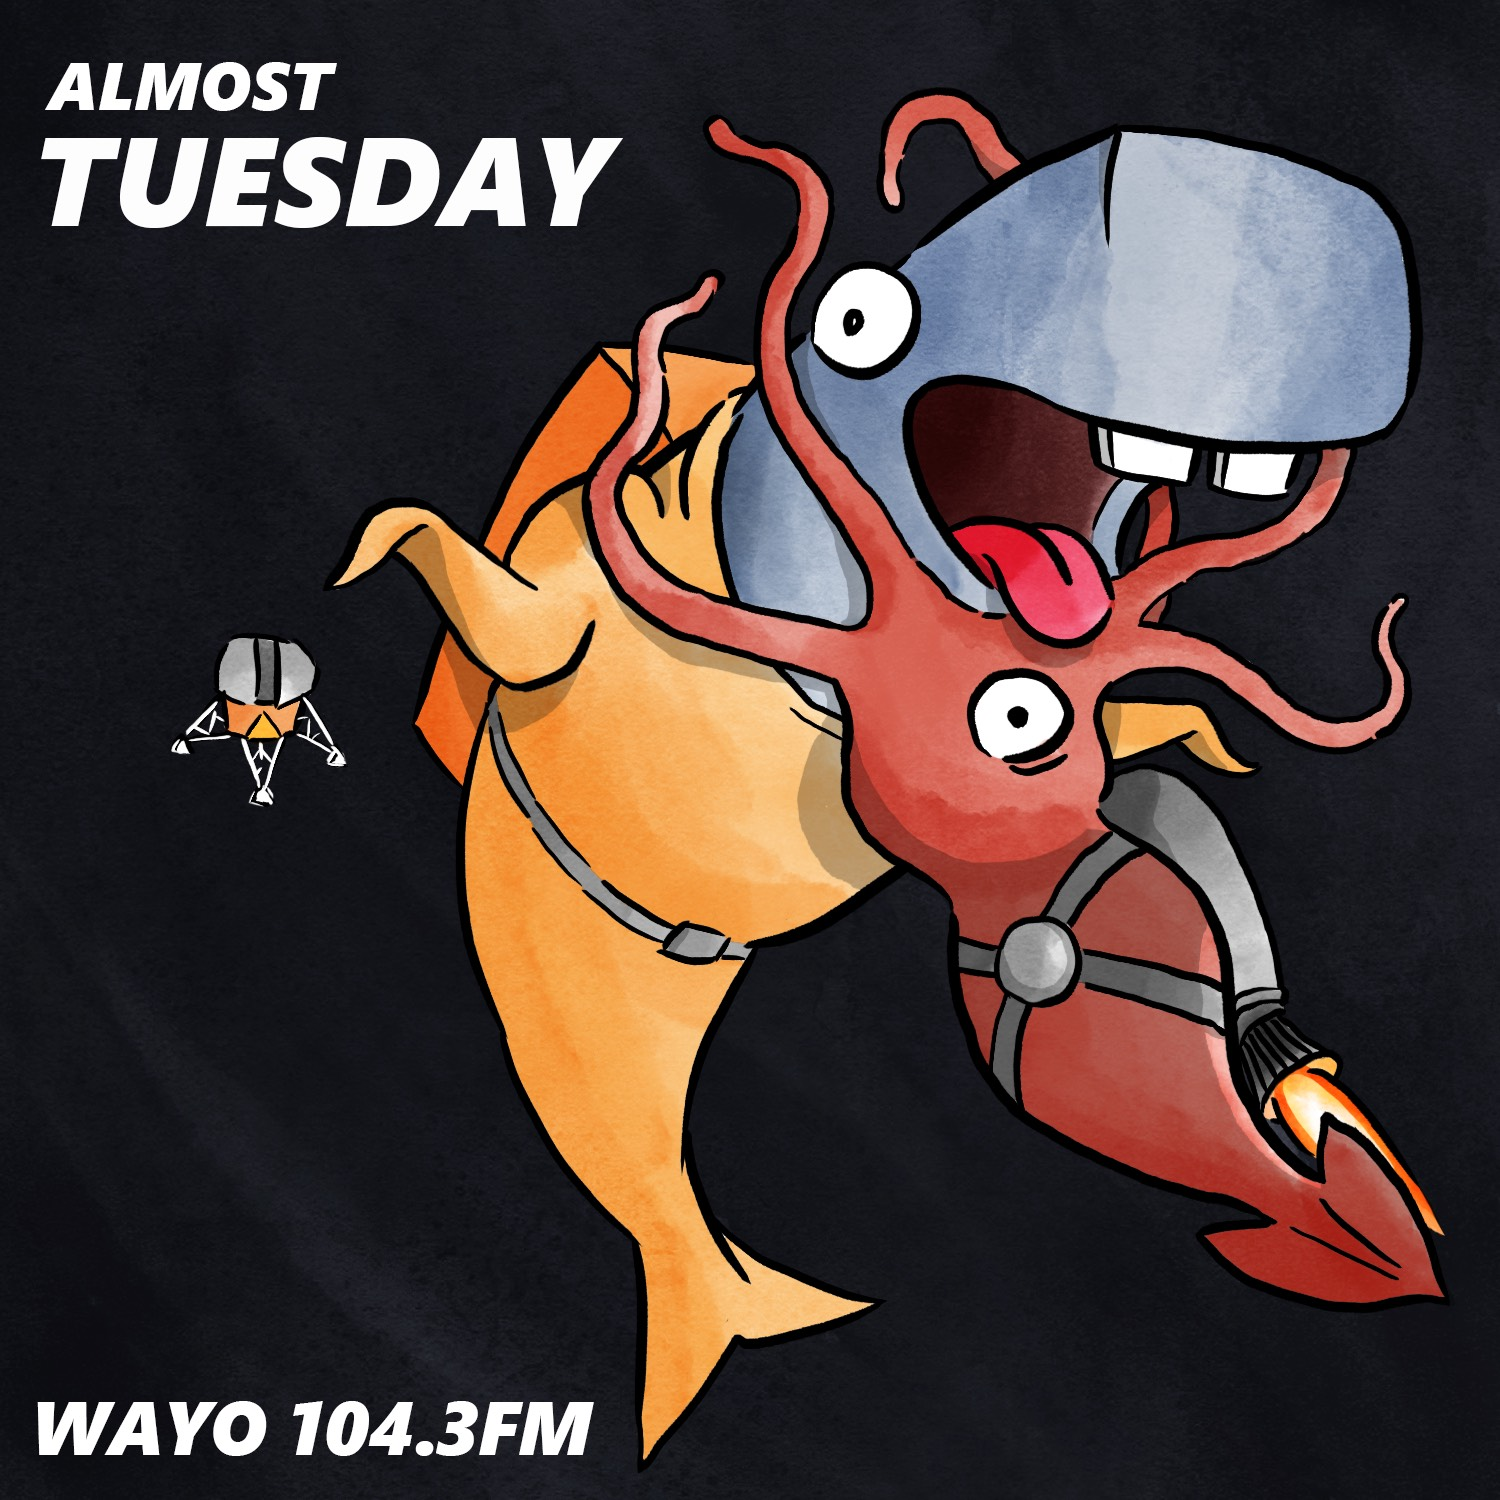 Almost Tuesday show image